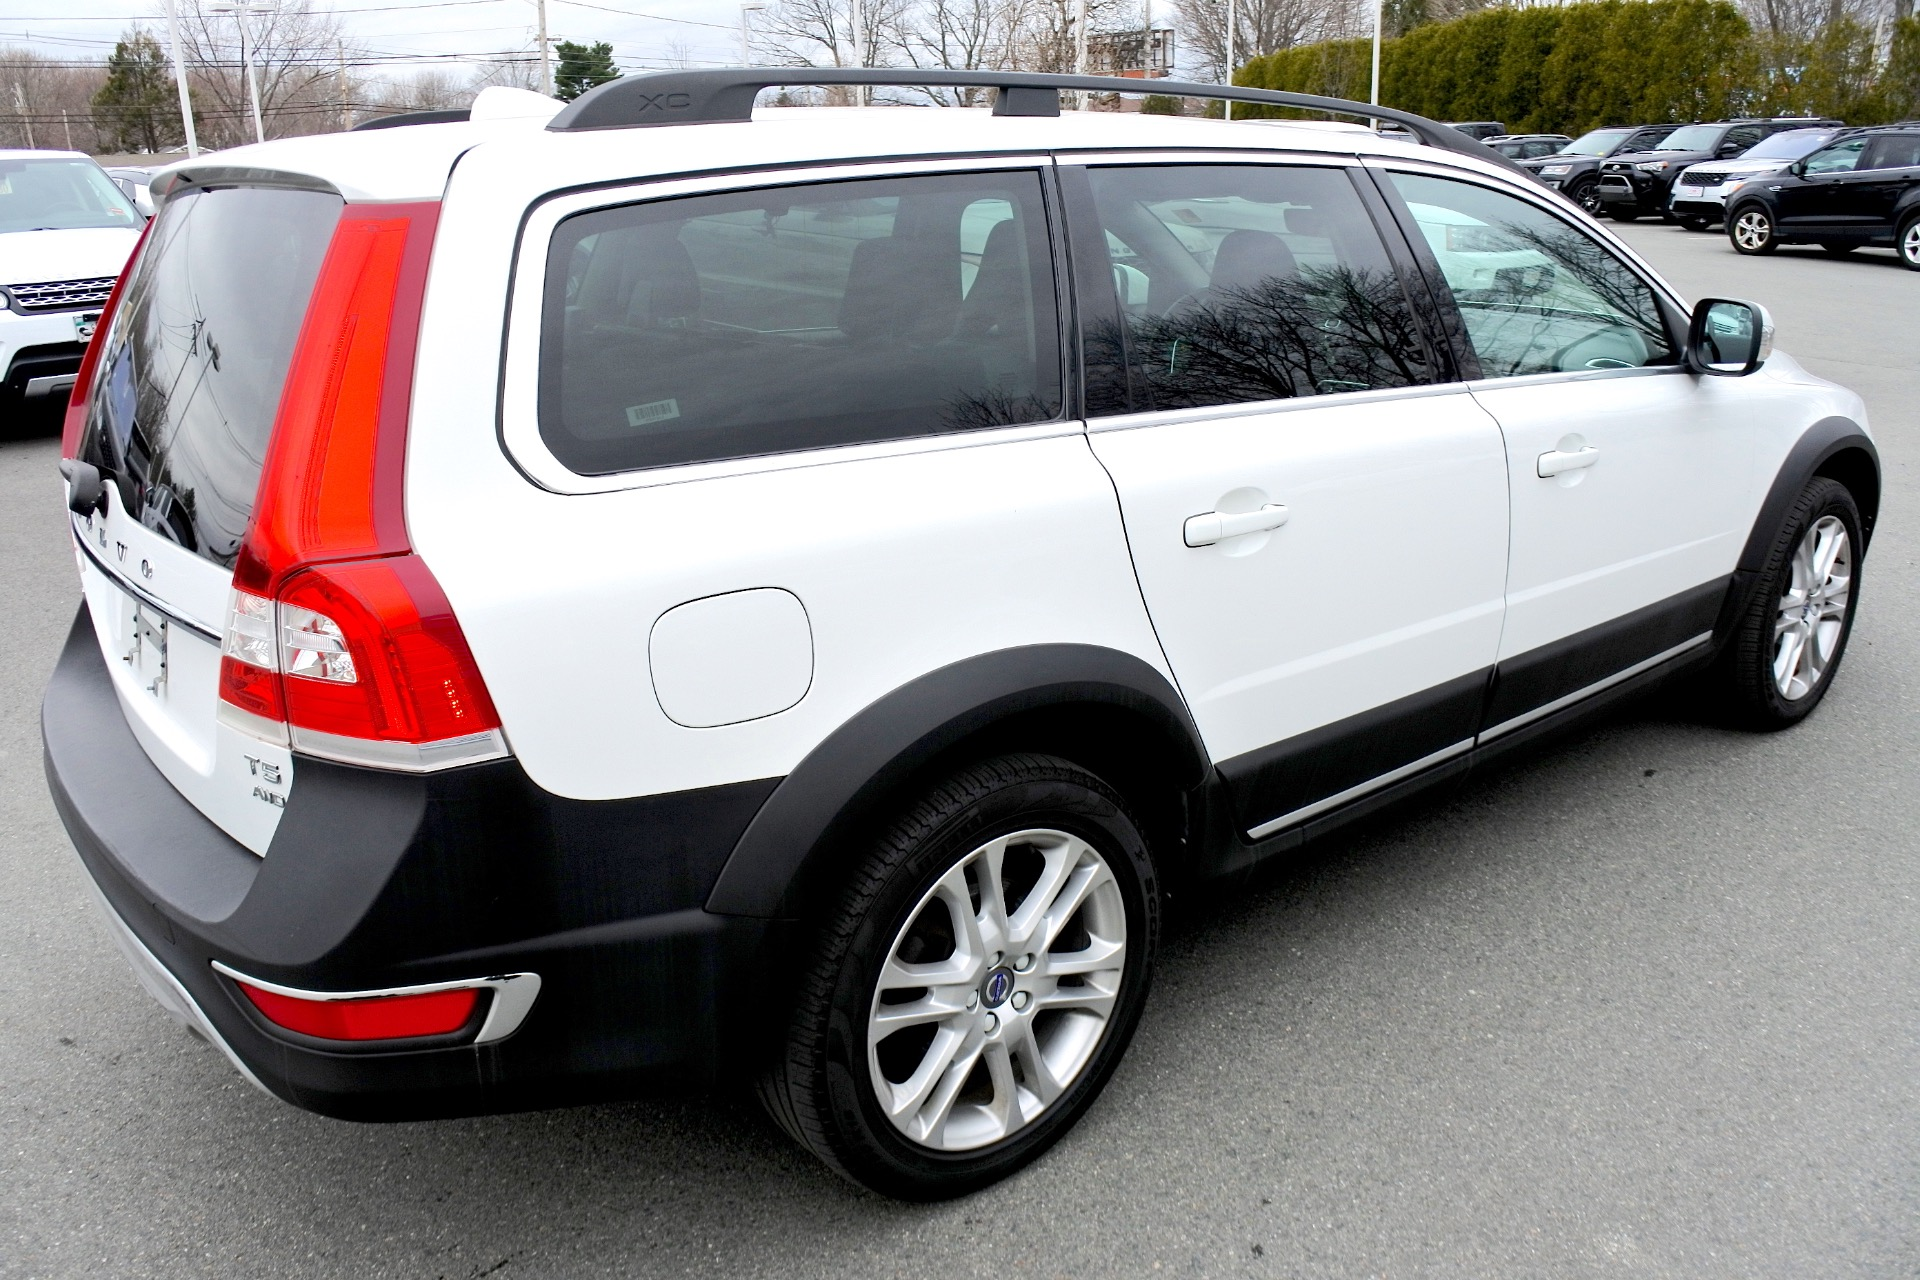 Used 2016 Volvo Xc70 T5 Premier AWD Used 2016 Volvo Xc70 T5 Premier AWD for sale  at Metro West Motorcars LLC in Shrewsbury MA 5